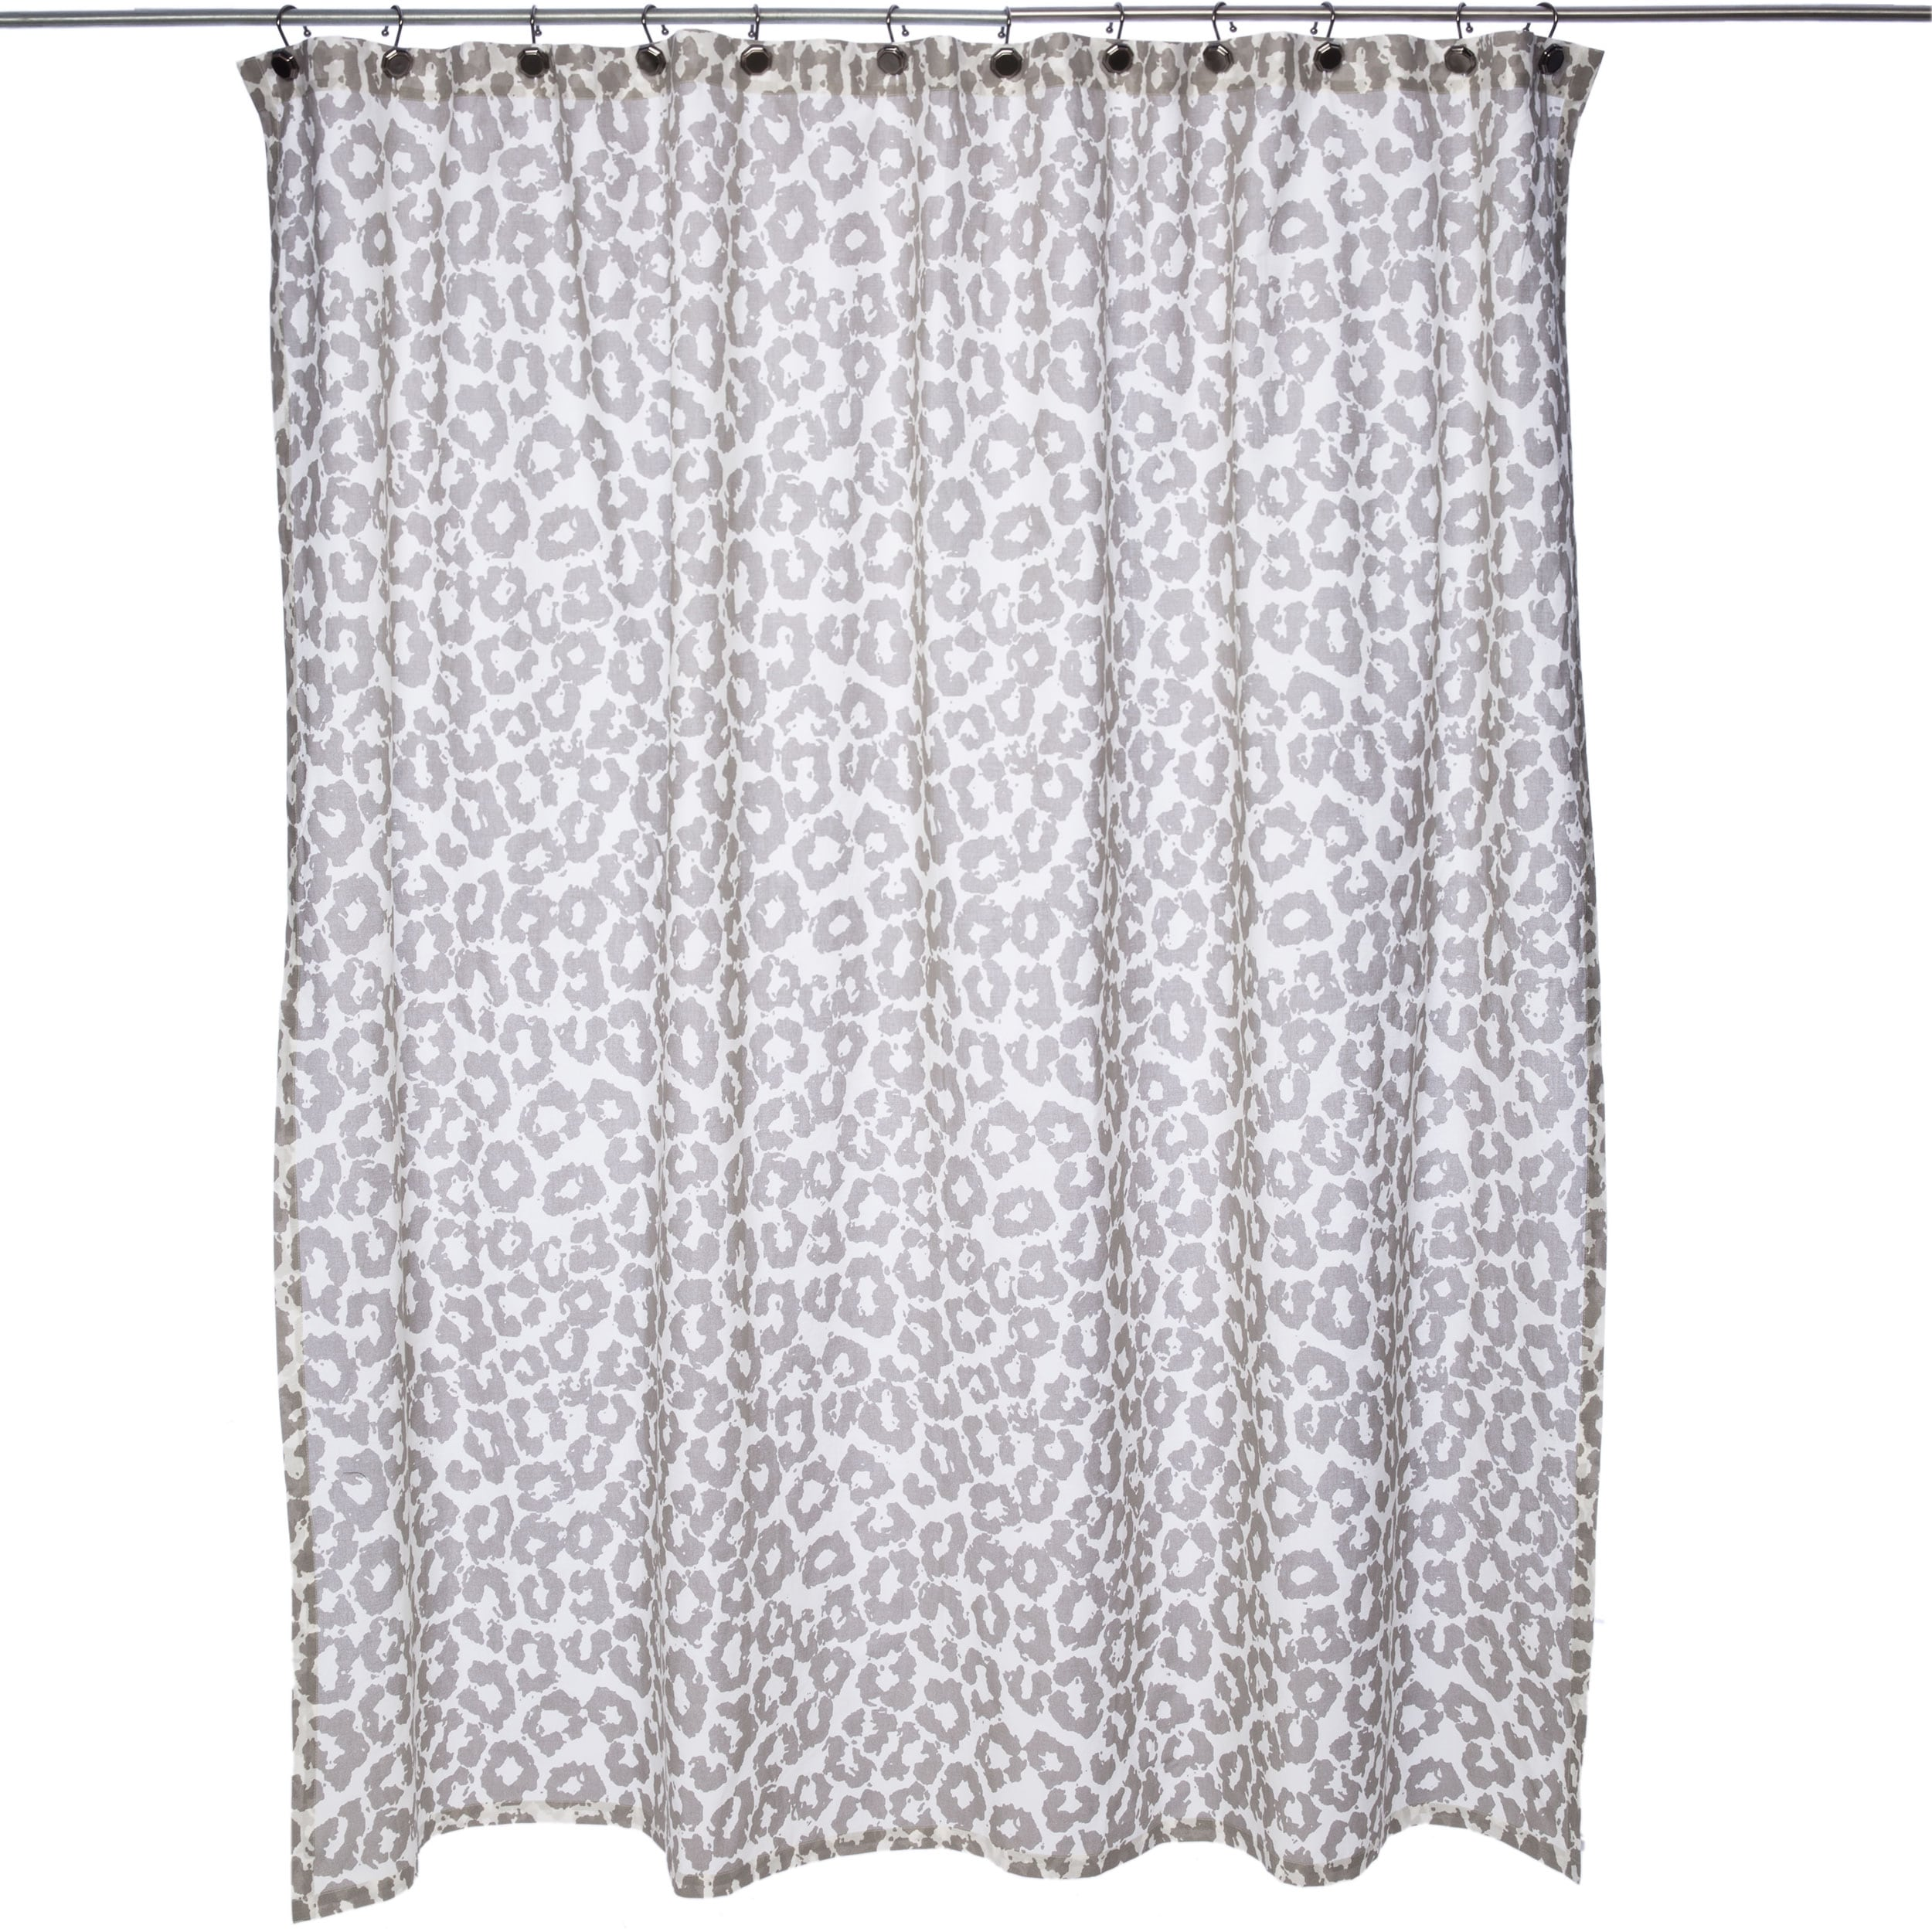 holli zollinger linen tassel curtain curtains and charcoal french shower ccfb products mat with